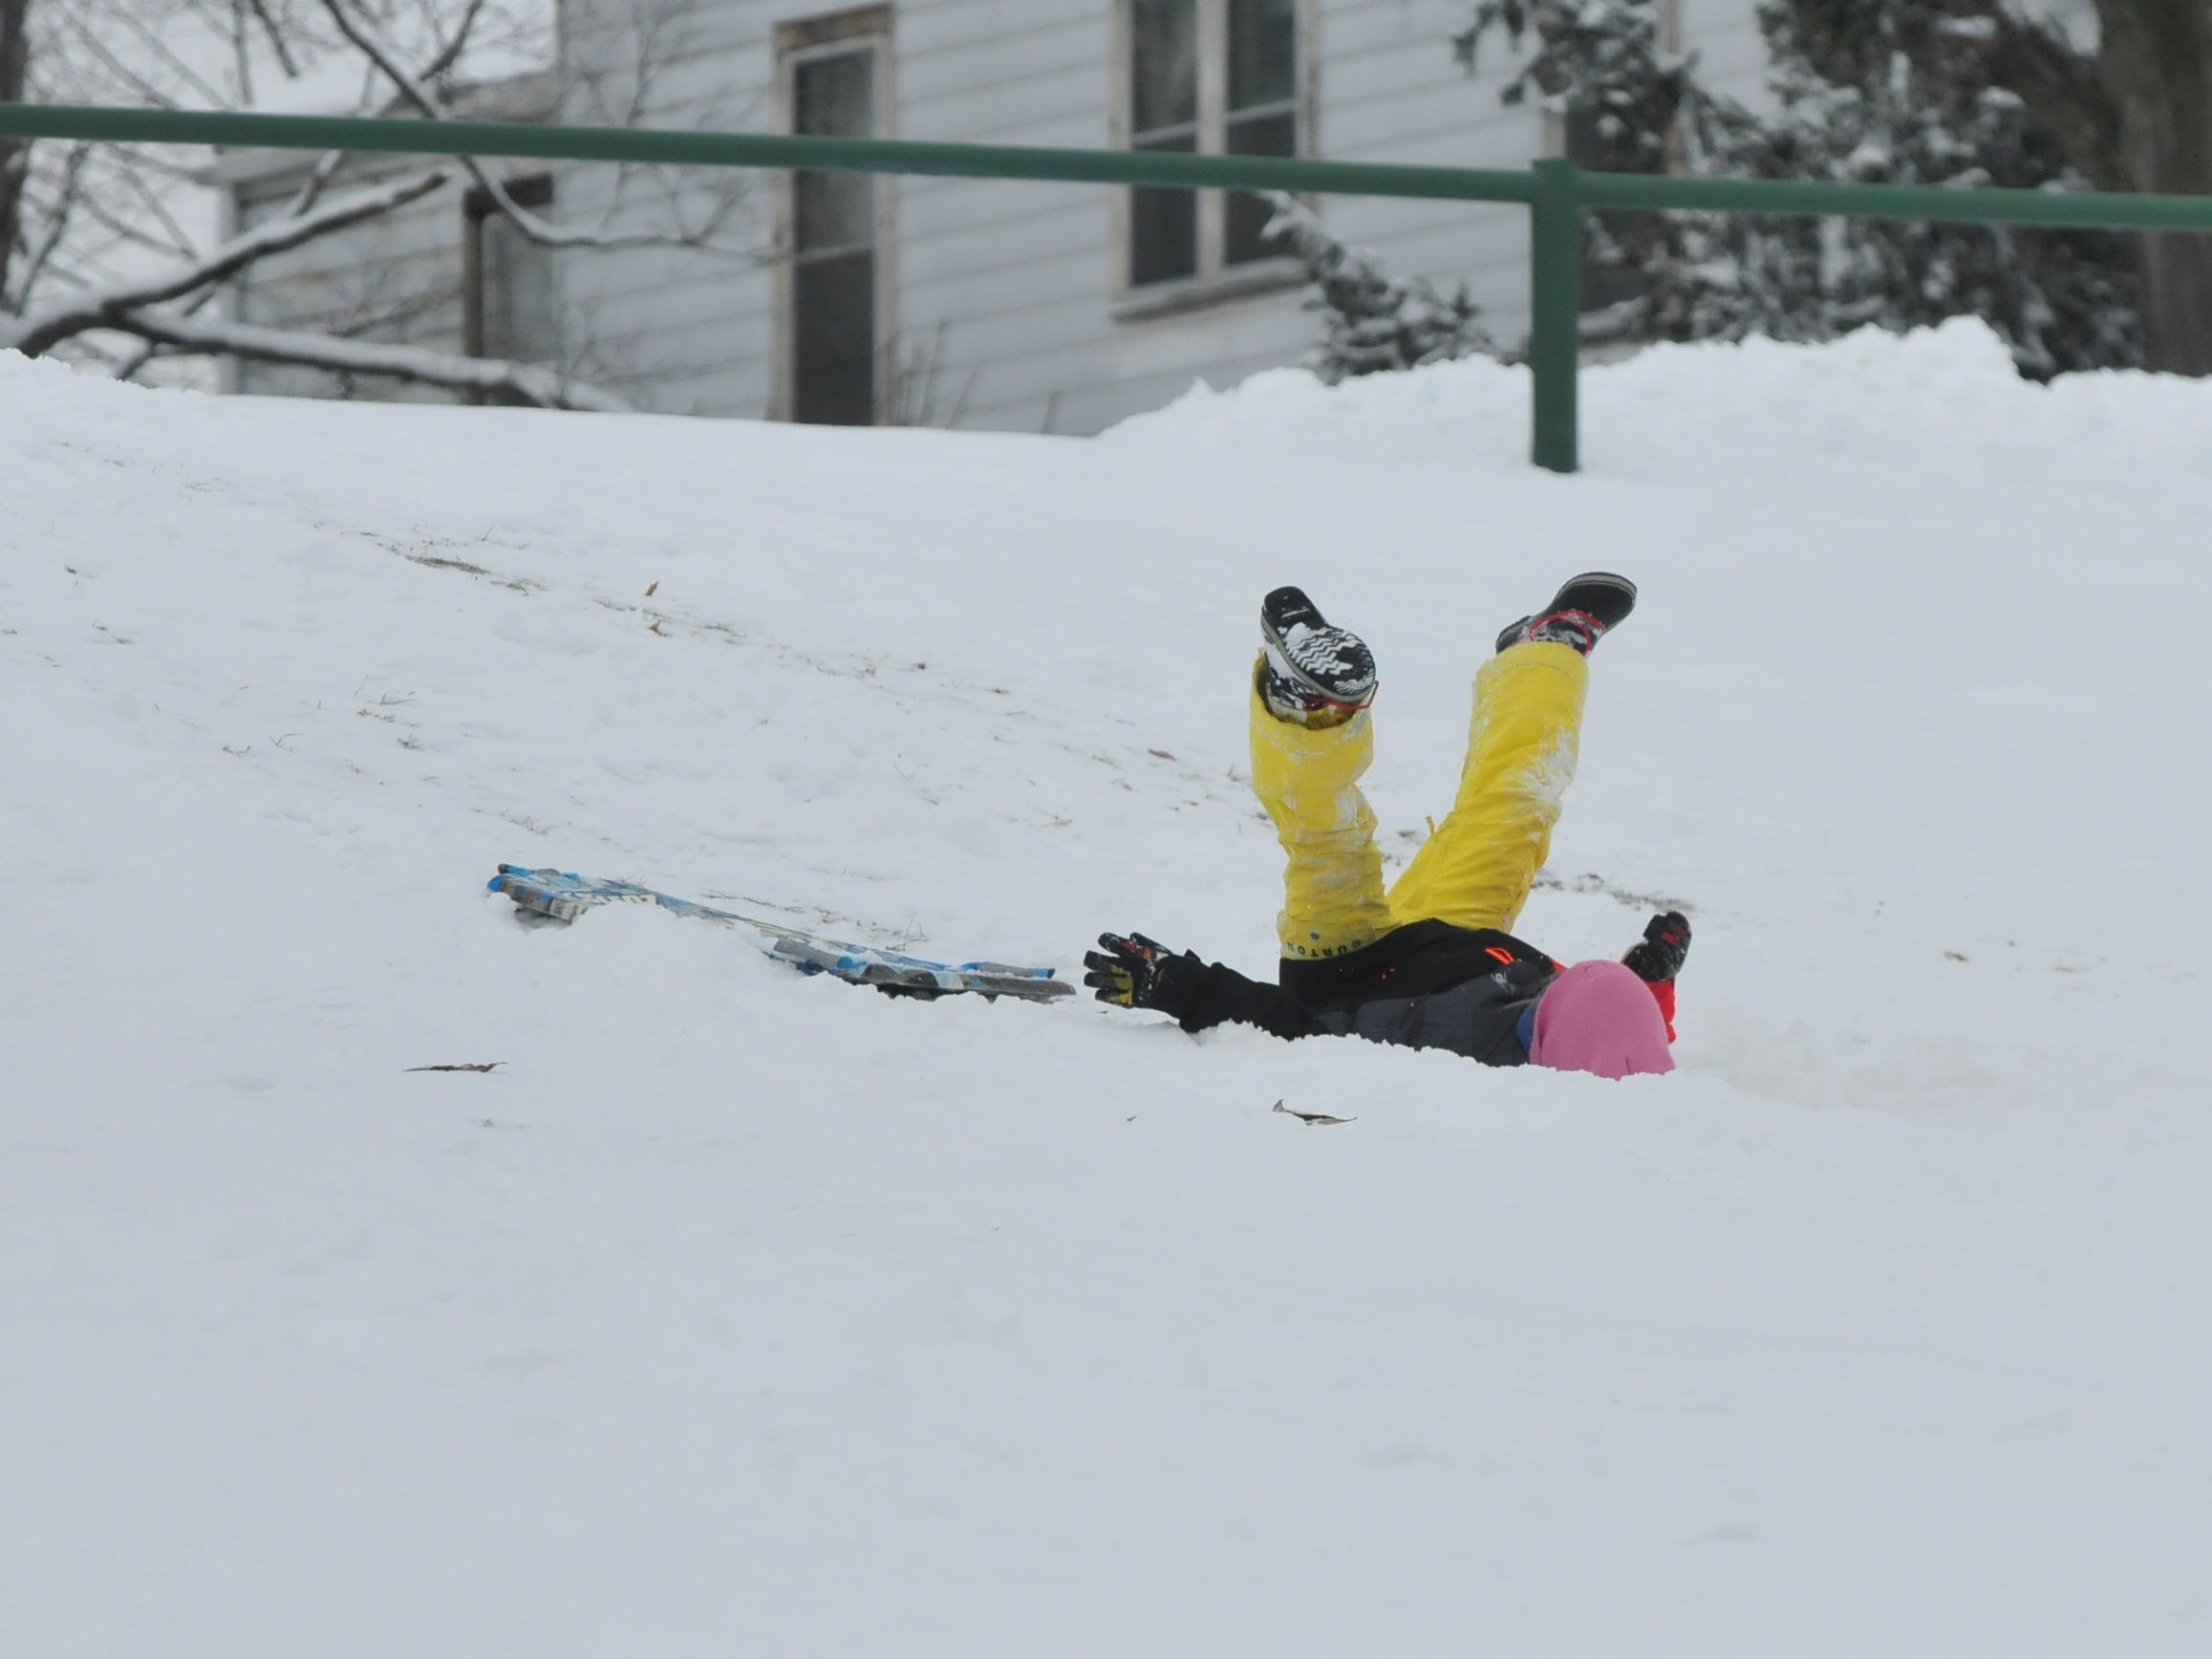 Addie Belanga falls into the snow Friday while using a sled like a snowboard at Roosevelt Hill in Glen Miller Park.